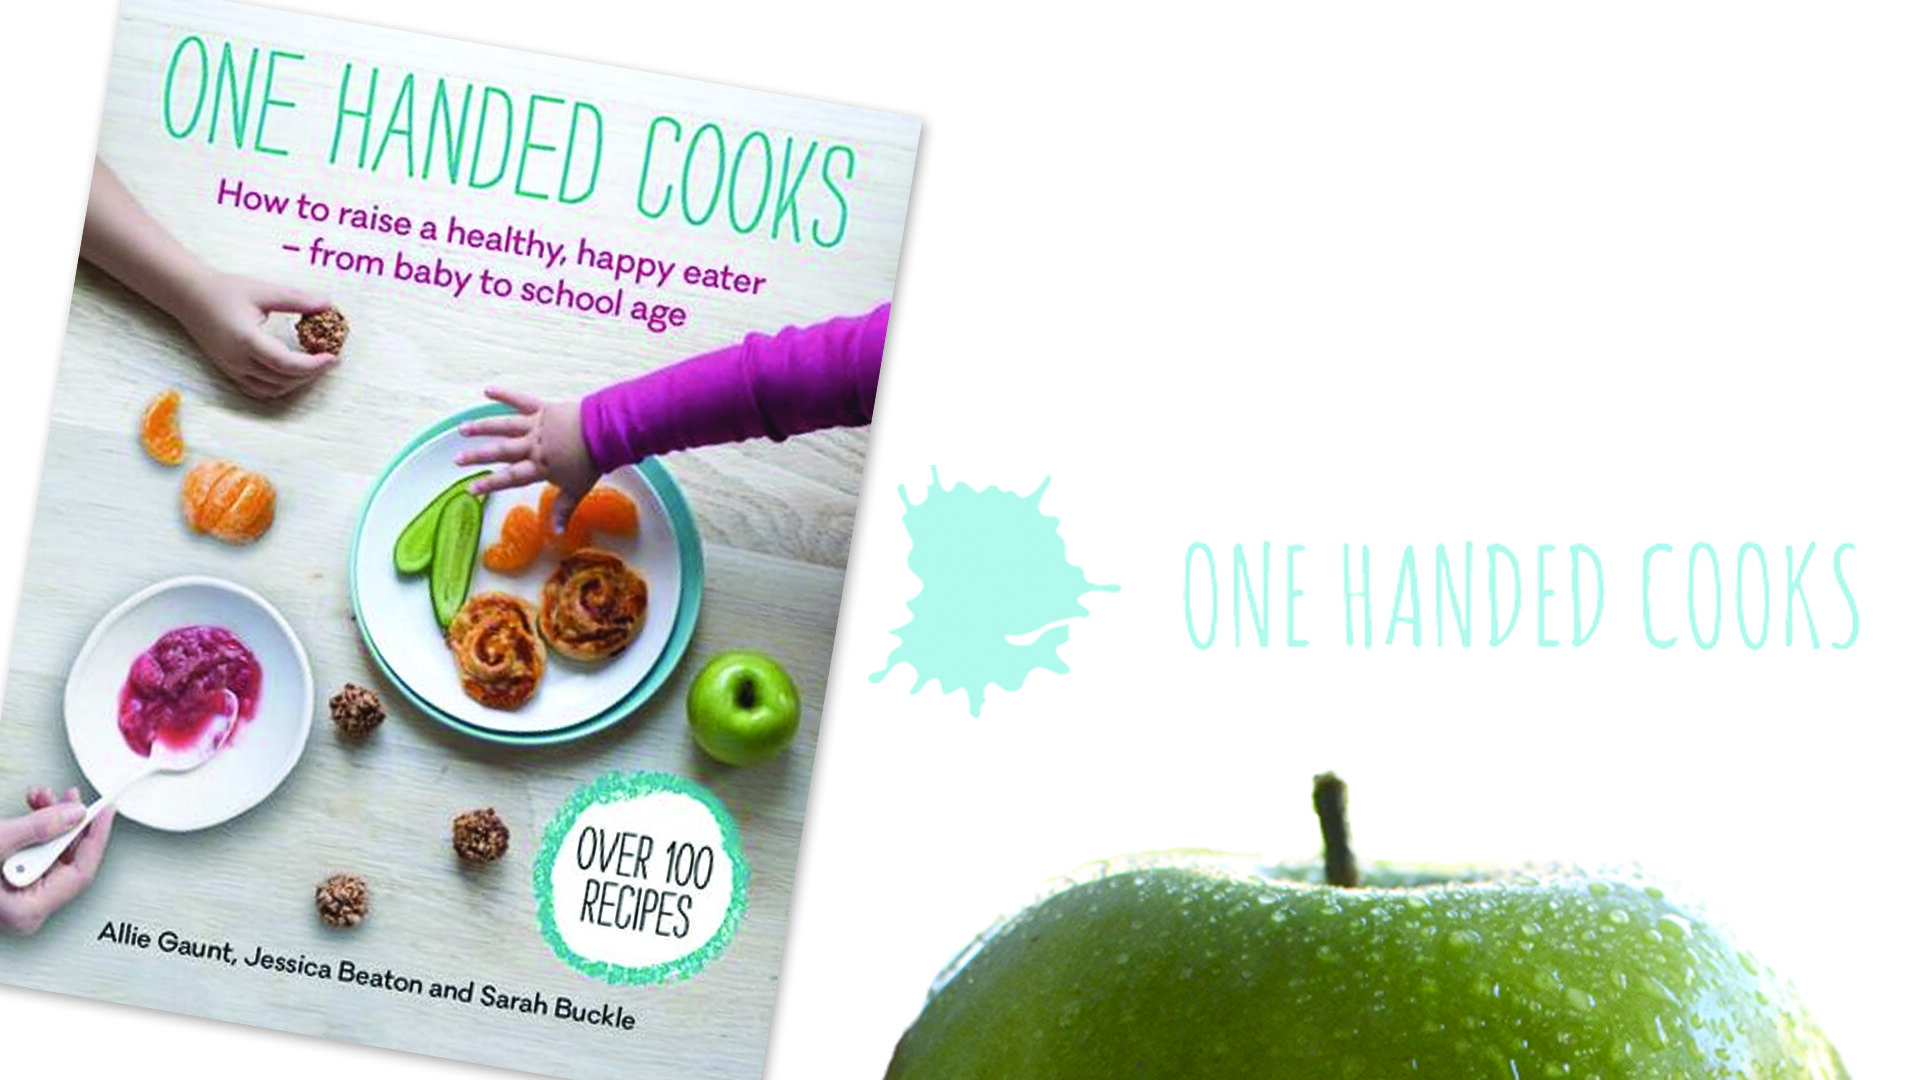 Introducing Solids with Blogger / Author Jess Beaton from One Handed Cooks - We are THRILLED to have Author & Blogger Jess Beaton from One Handed Cooks here to discuss all info you need to start thinking about the introduction to Solids.Ideally suited for 4-6month oldsCovering topics including:- How do I tell if my baby is ready to start solids?- Which foods do I offer first, and how much?- Are there any foods I should avoid?- What about meat? And eggs?- How many meals per day do they need?- When can I begin to offer finger foods?Tuesday November 19th - 10am - 11:30am